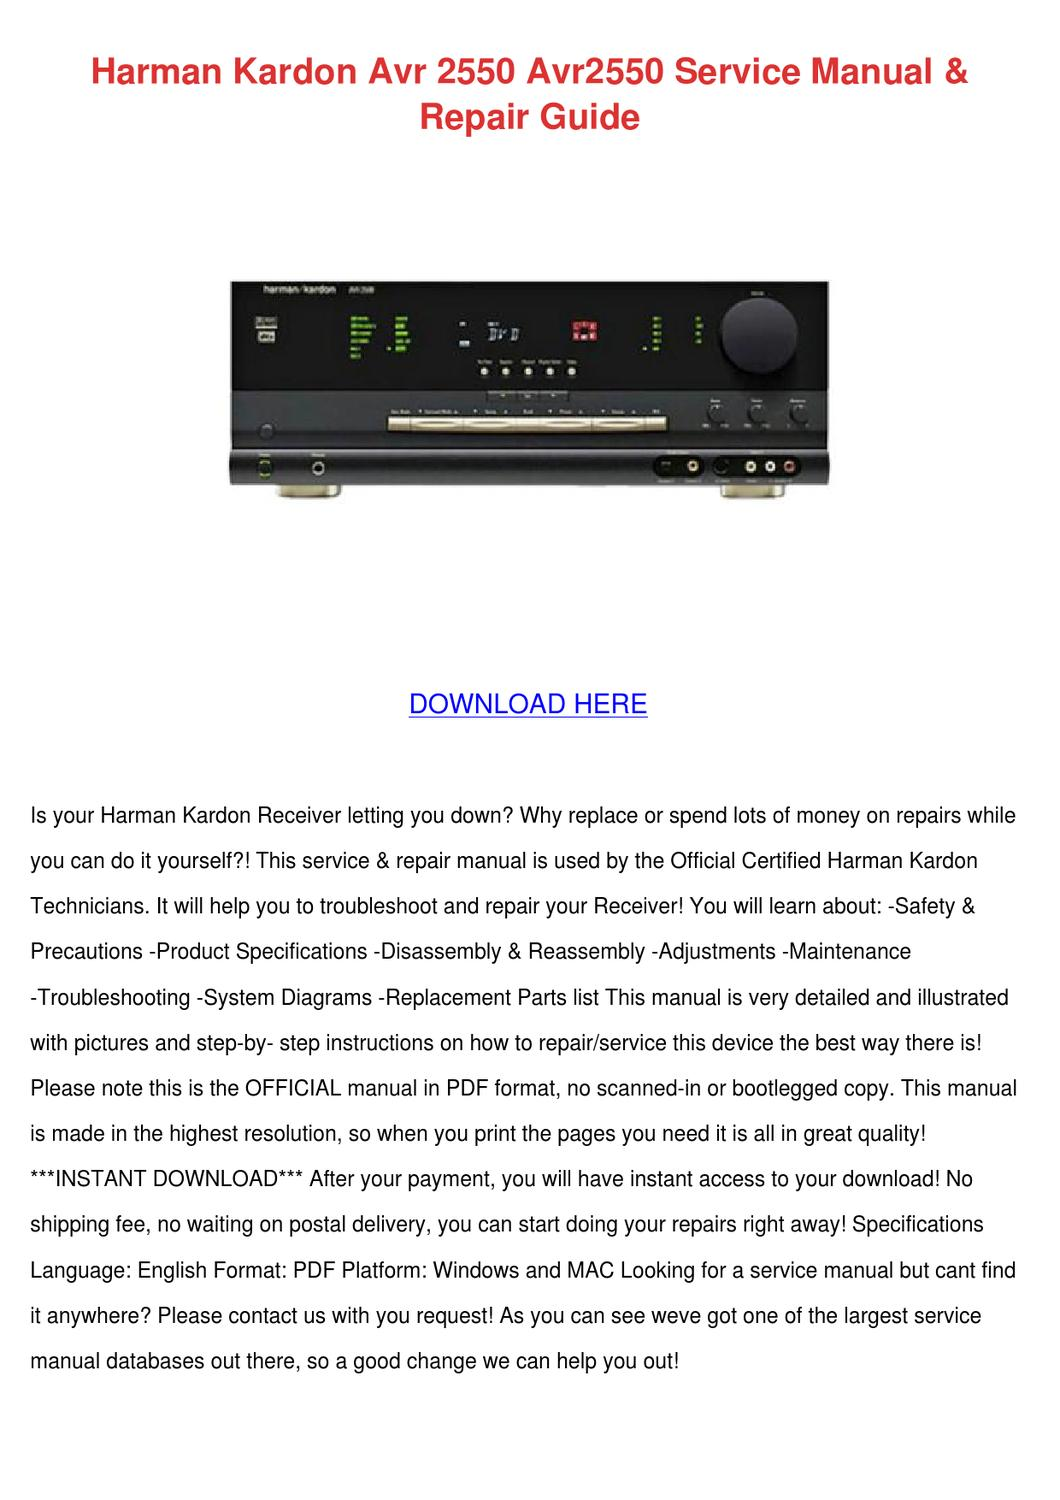 Harman Kardon Avr 2500 Service Manual